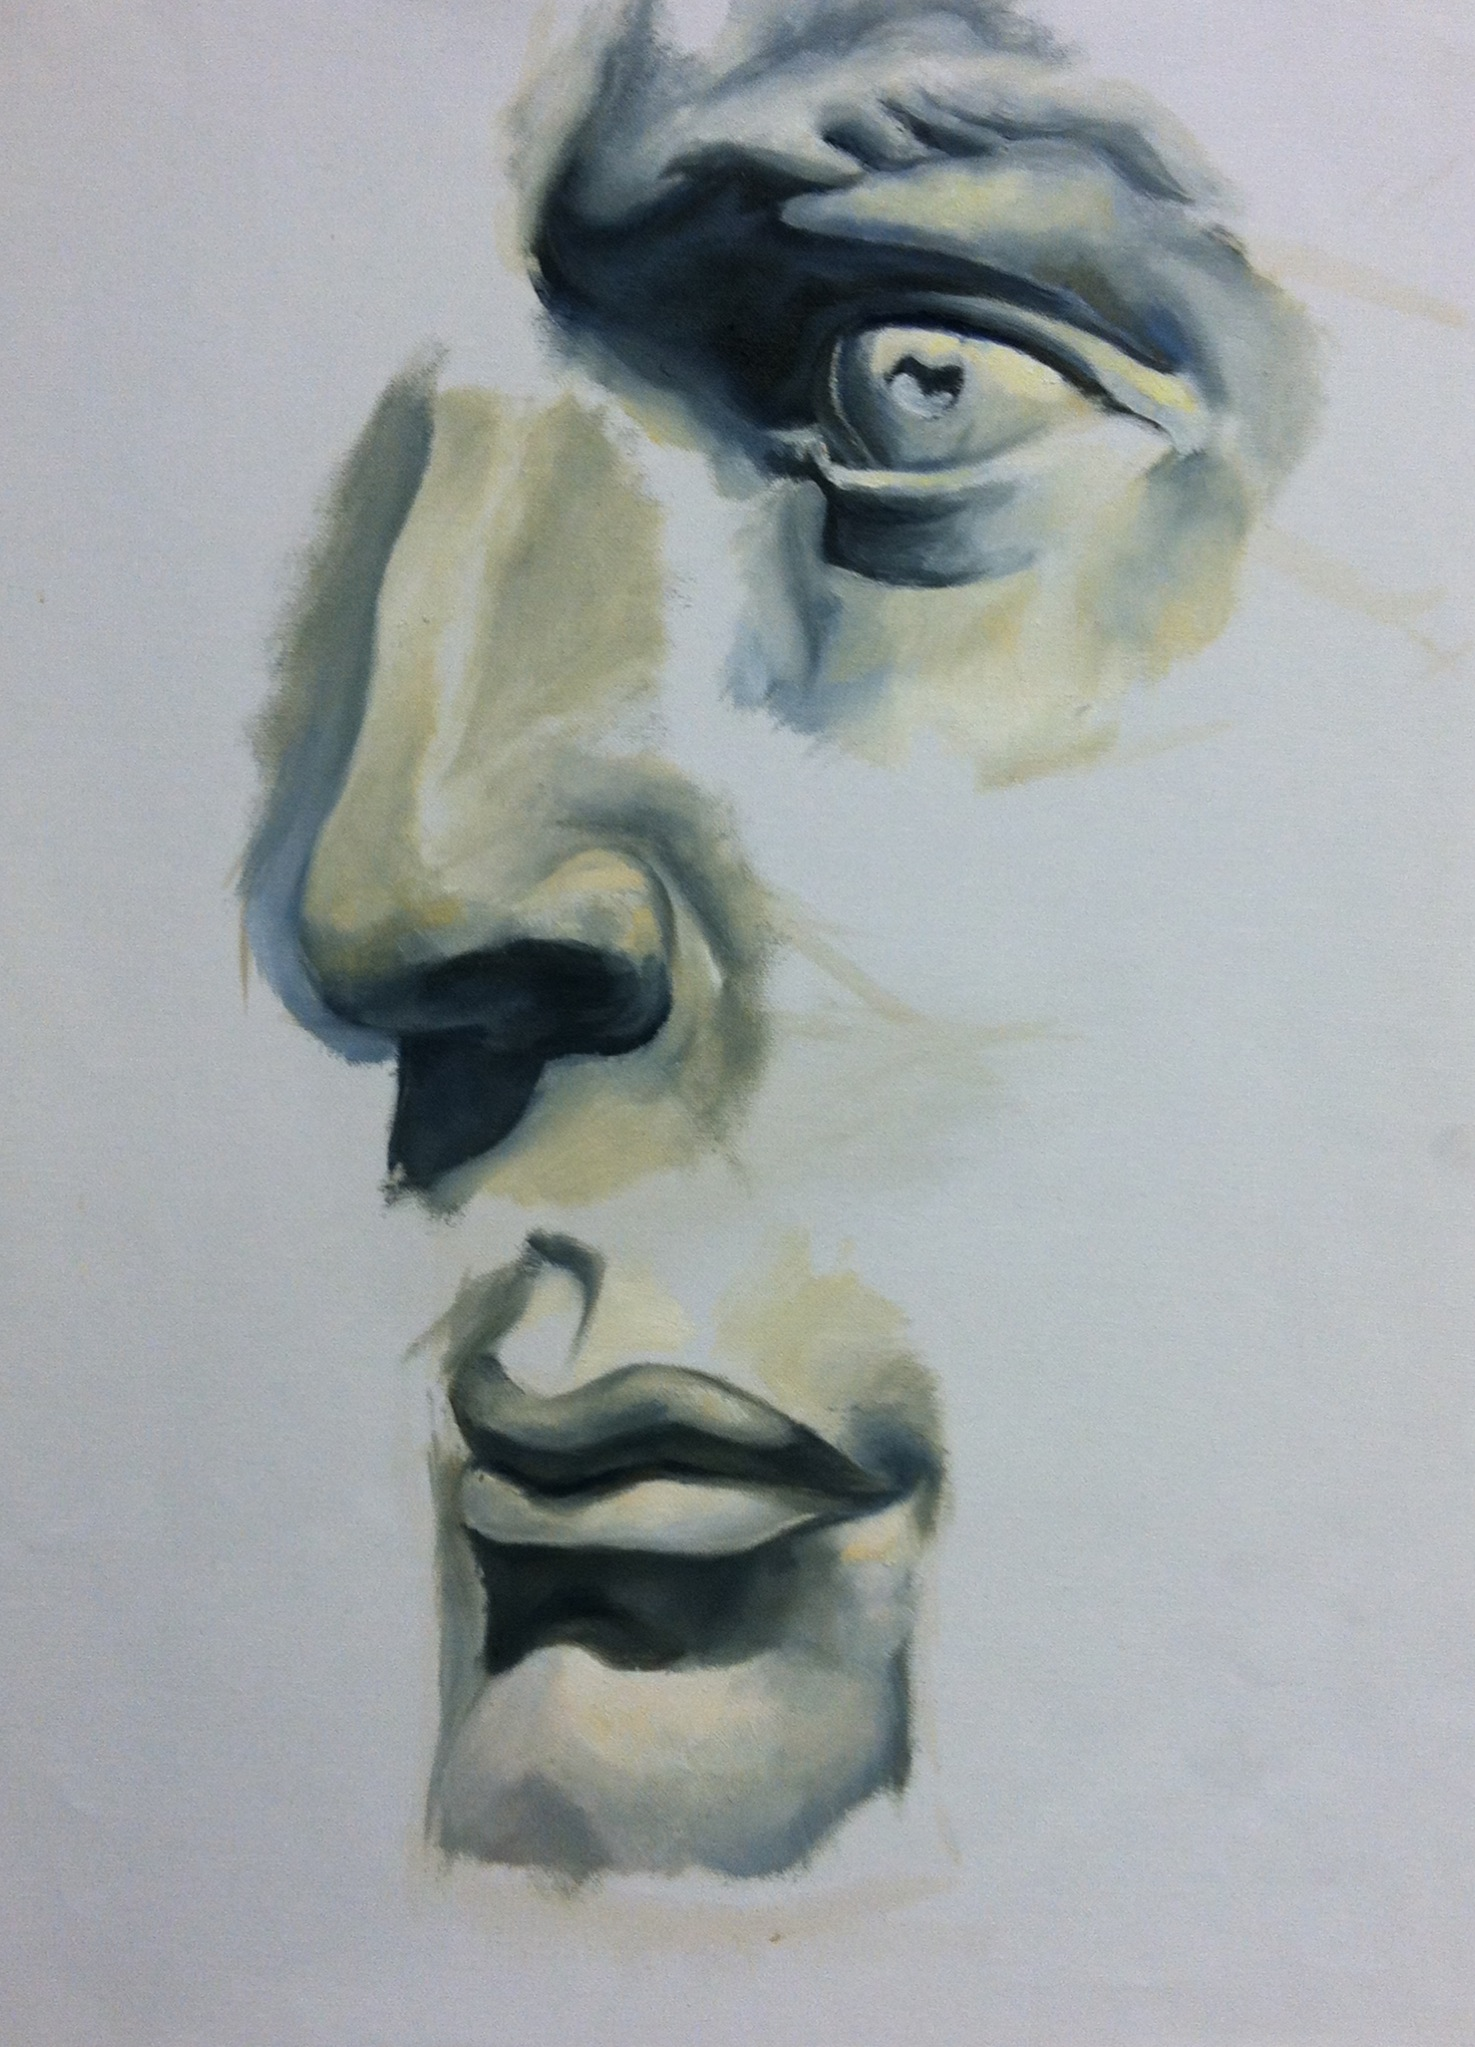 Highschool Facial Studies. Oil Painting